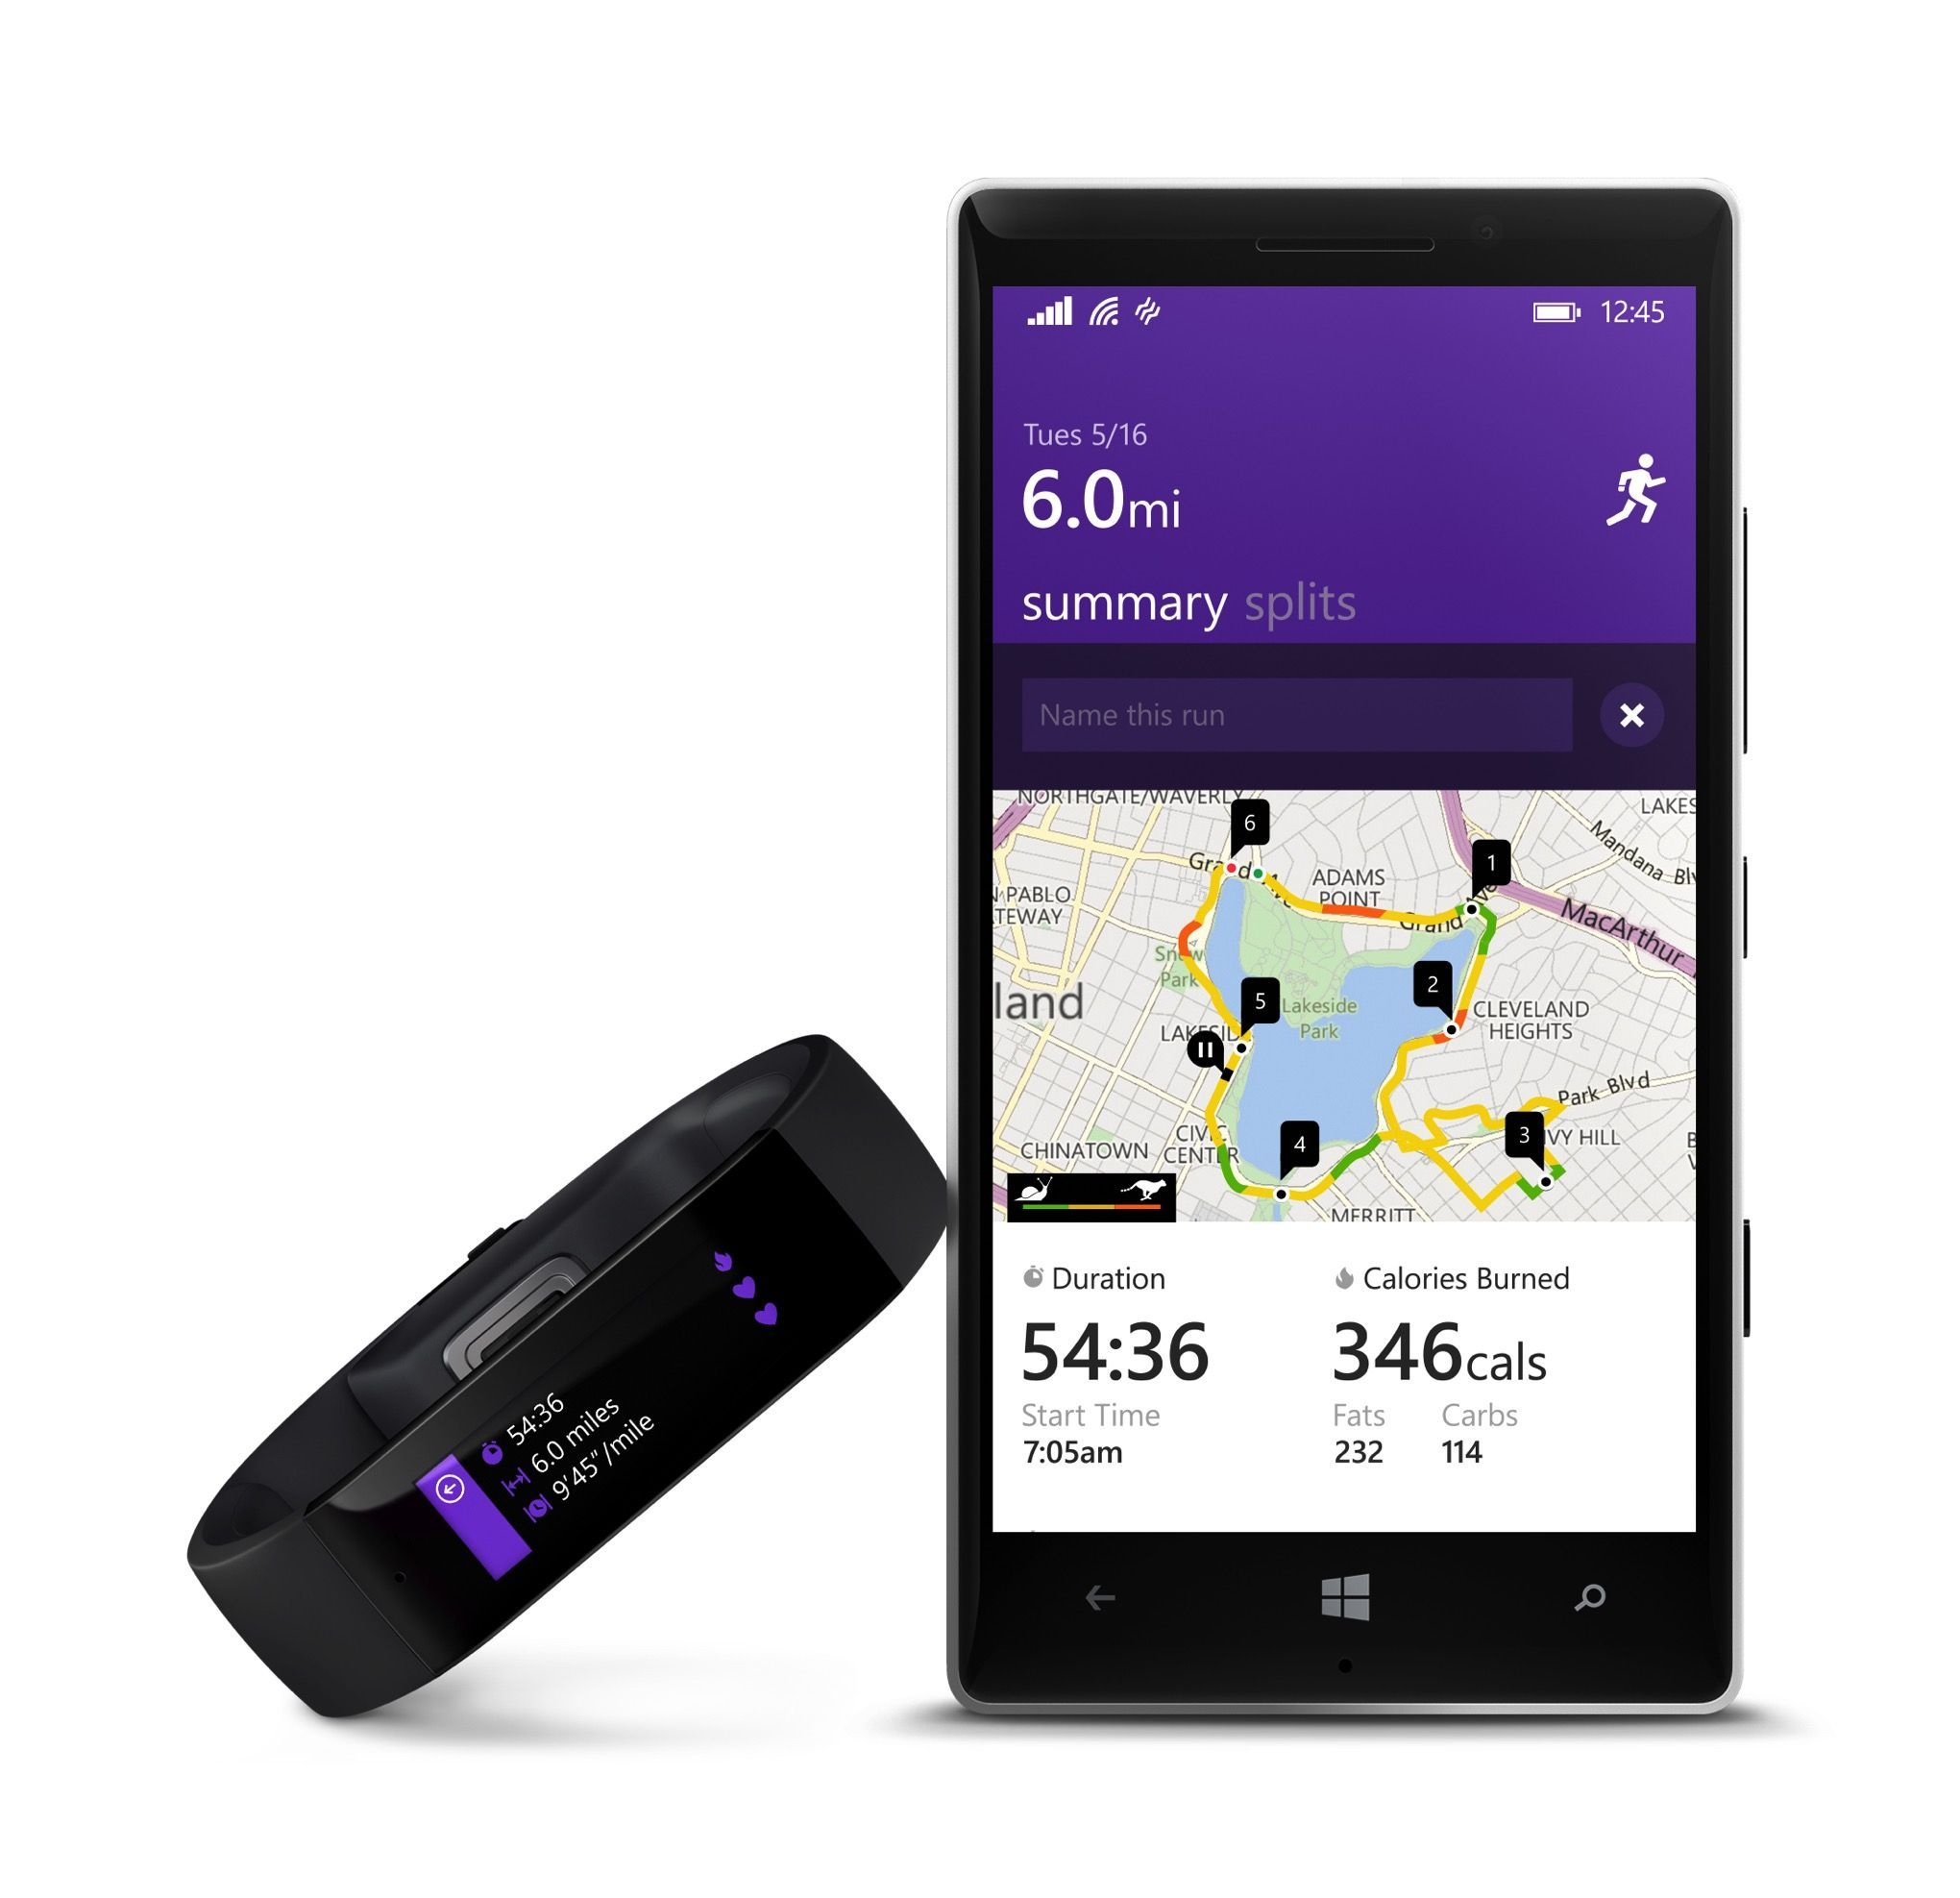 Microsoft's health revolution is here, starting with a